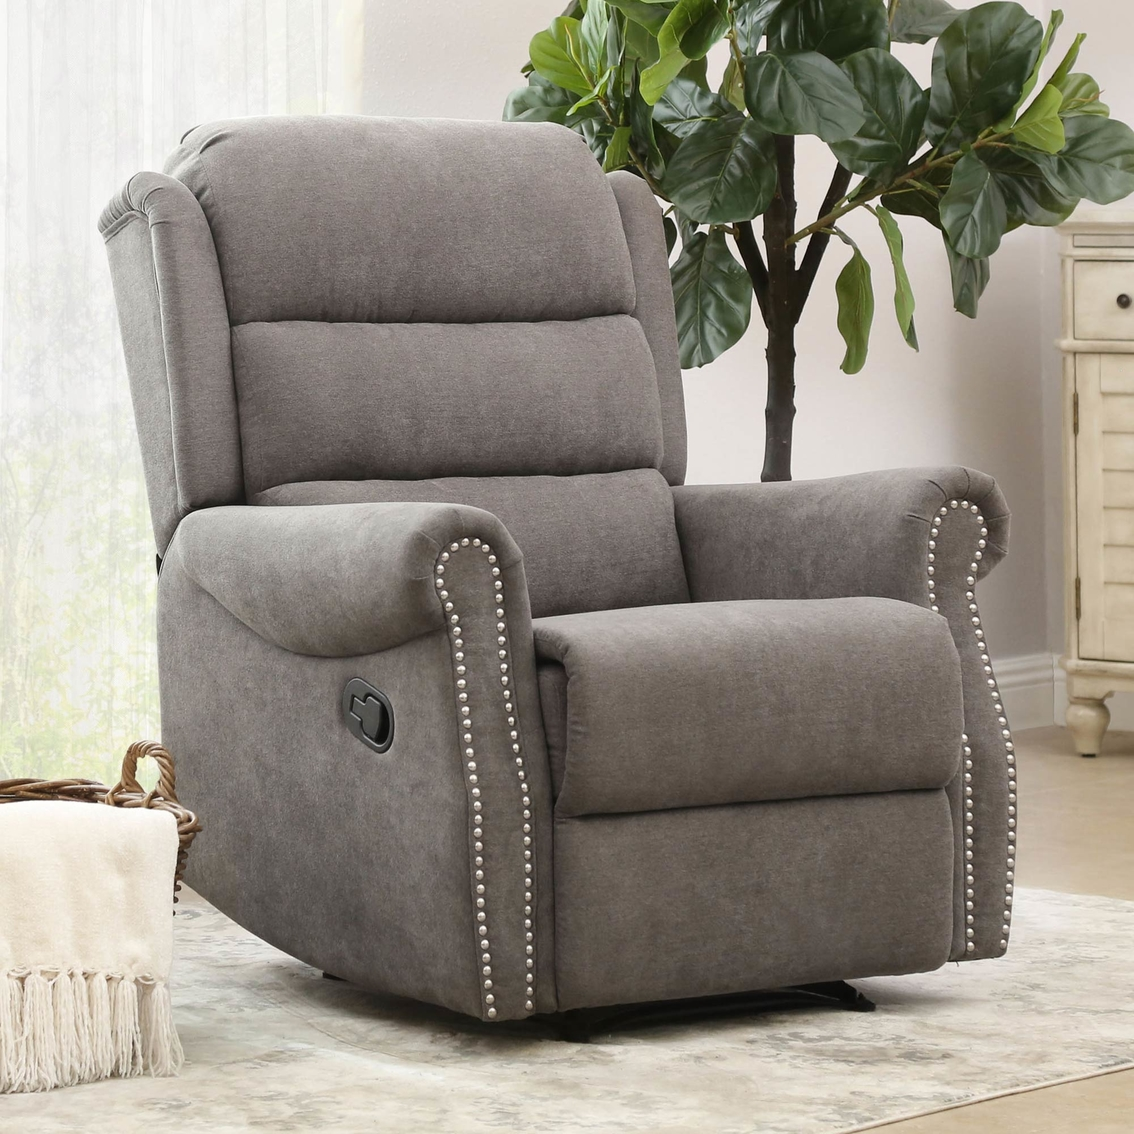 Sensational Abbyson Carey Fabric Nailhead Recliner Chairs Recliners Gmtry Best Dining Table And Chair Ideas Images Gmtryco